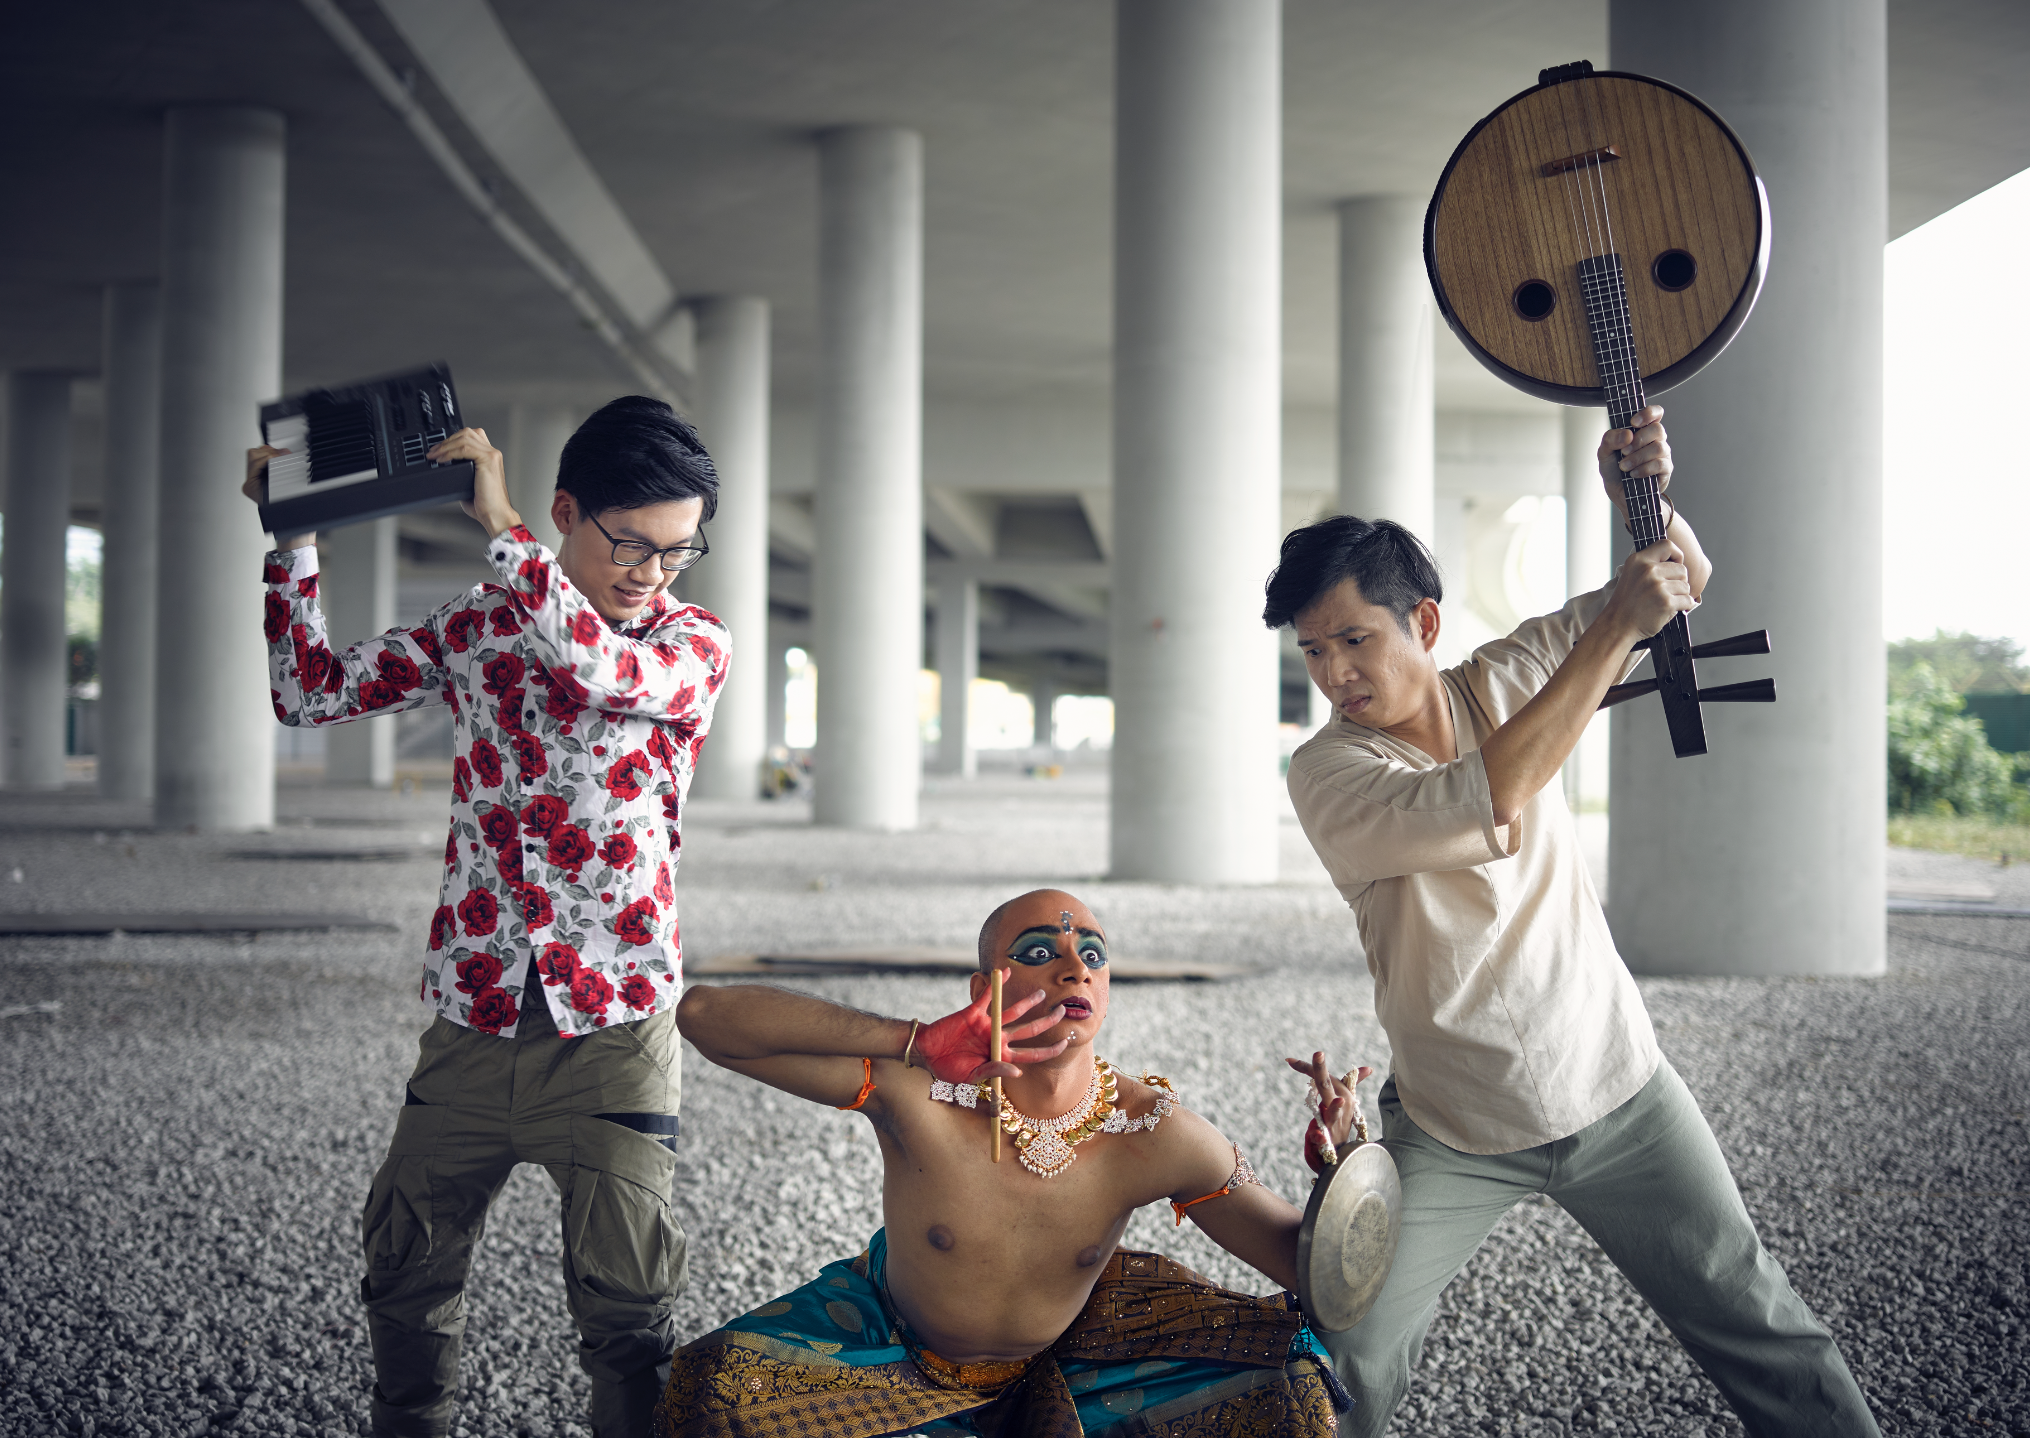 Night Walker cast (from left) sound designer Aw Wei Zheng, Bharatanatyam dancer Bala Saravanan Loganathan, and Ruan musician Neil Chua. Photo courtesy: Singapore Chinese Cultural Centre